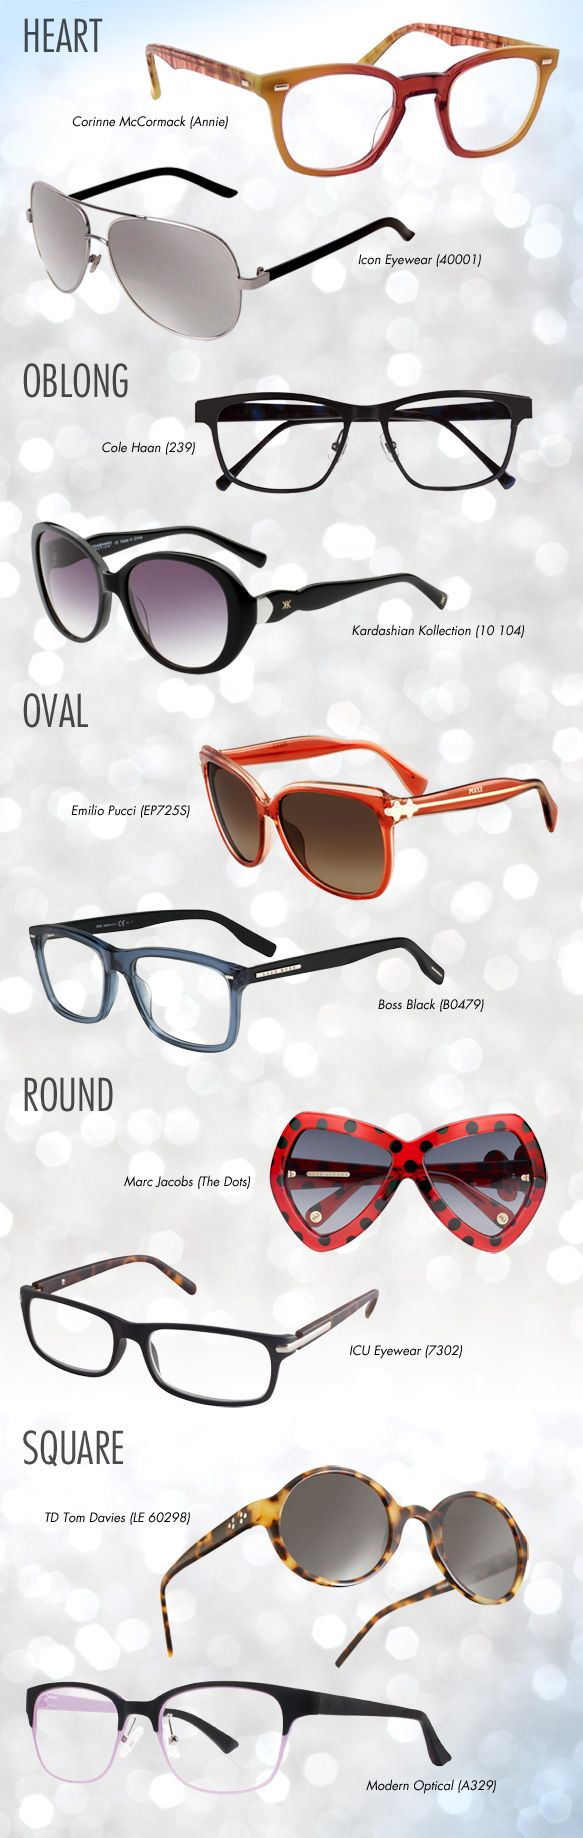 152 best images about Choosing Perfect Eyeglasses on Pinterest